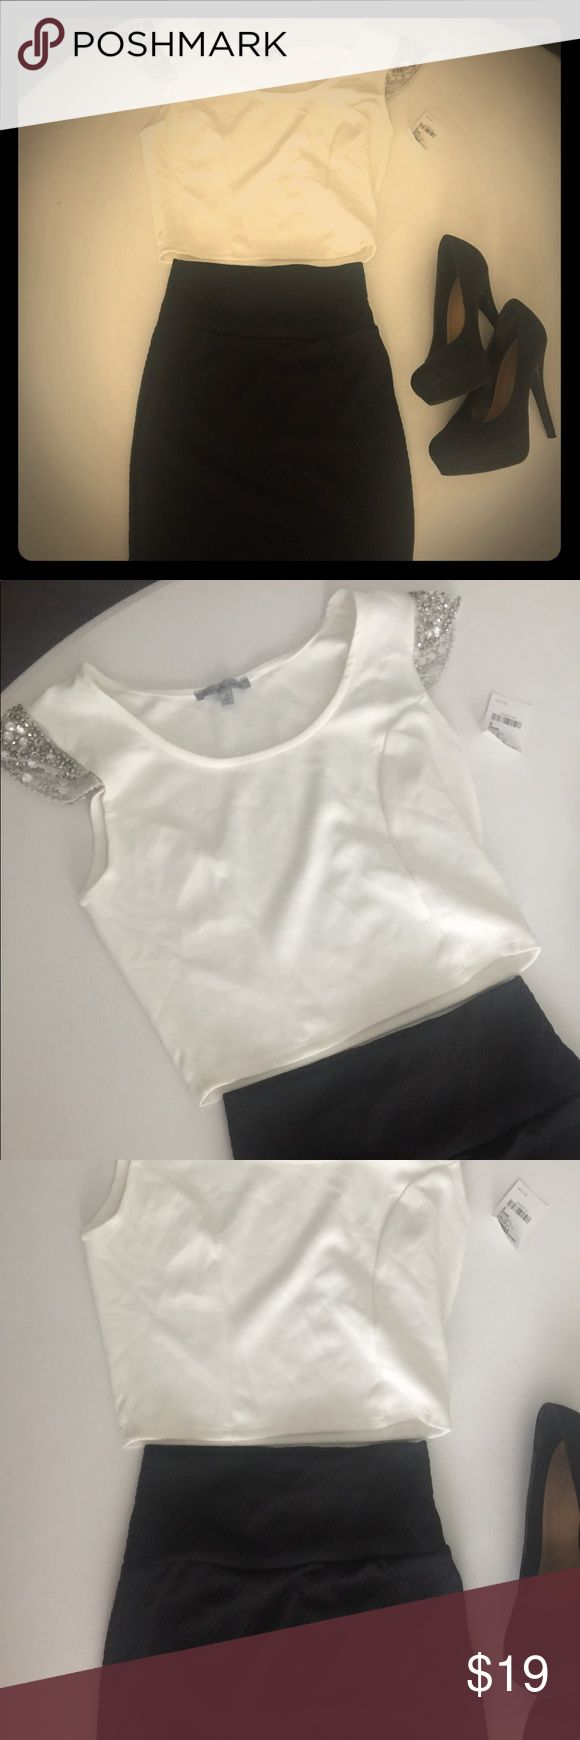 NWT! White Sequence crop top & black tube skirt! Perfect ensemble for a party! NWT! White Sequence sleeve crop top size Small! Black tube skirt size XS! Charlotte Russe Skirts Mini